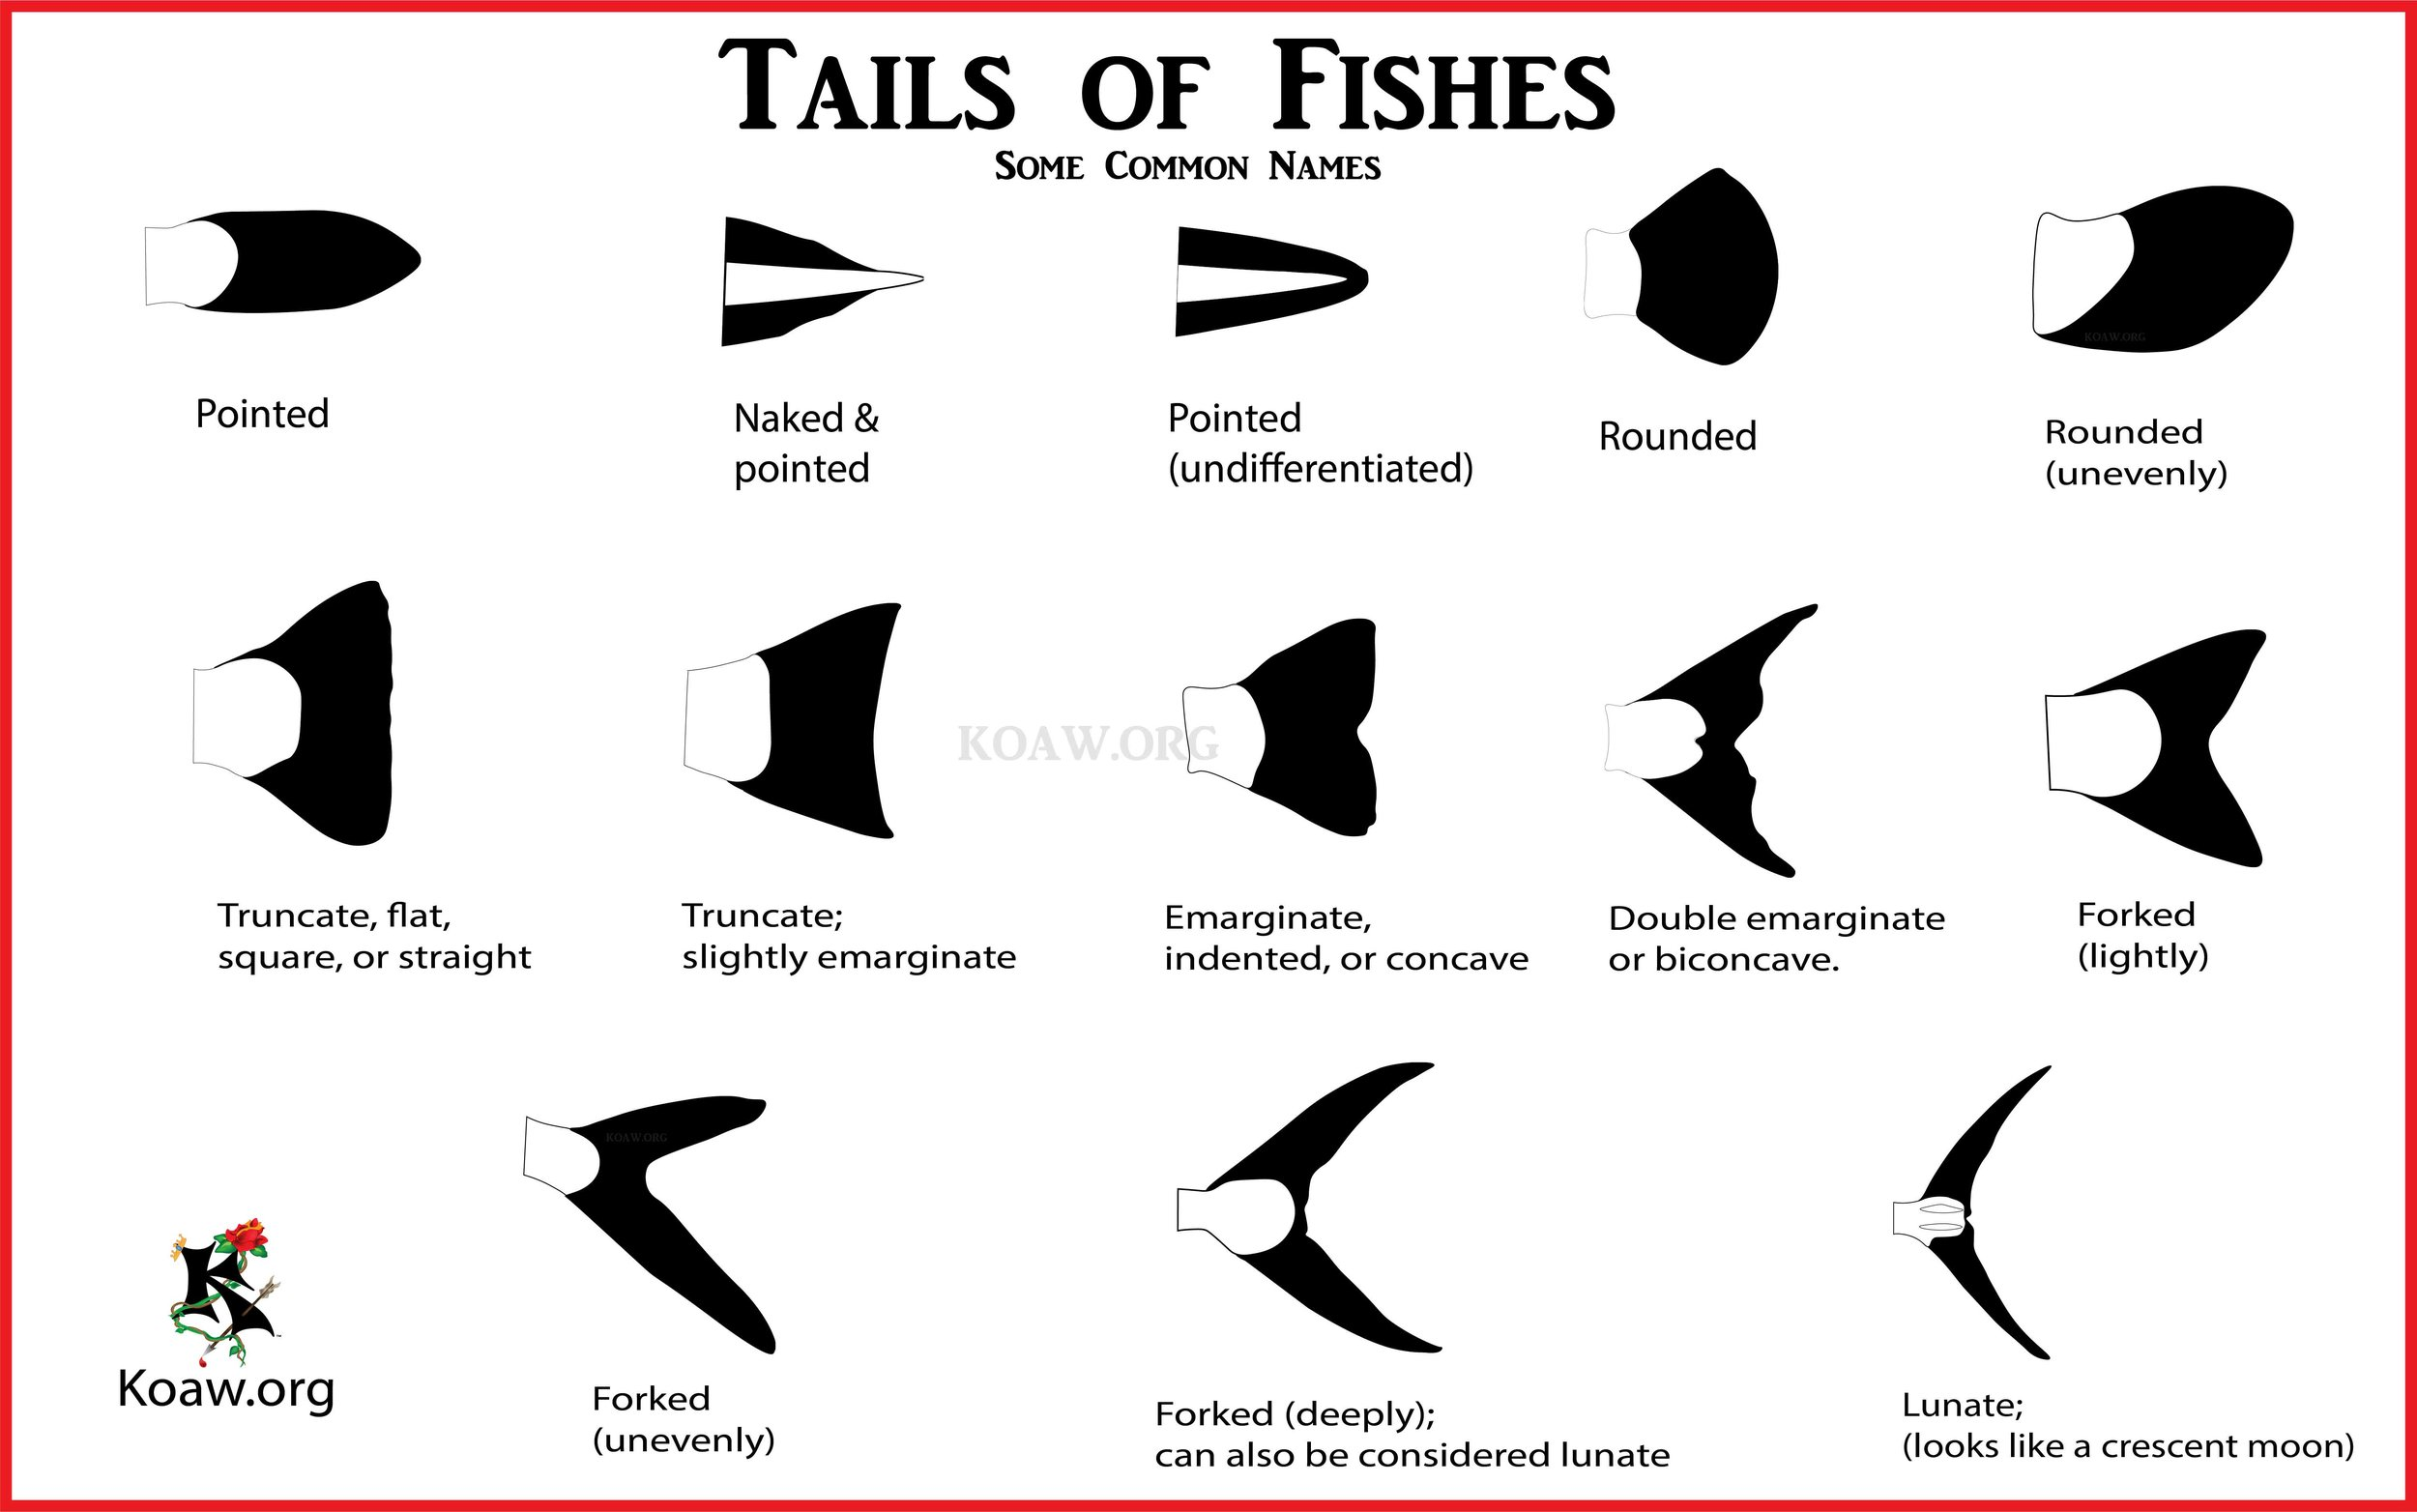 Fish Tails - Caudal Fins of Fishes - By Koaw